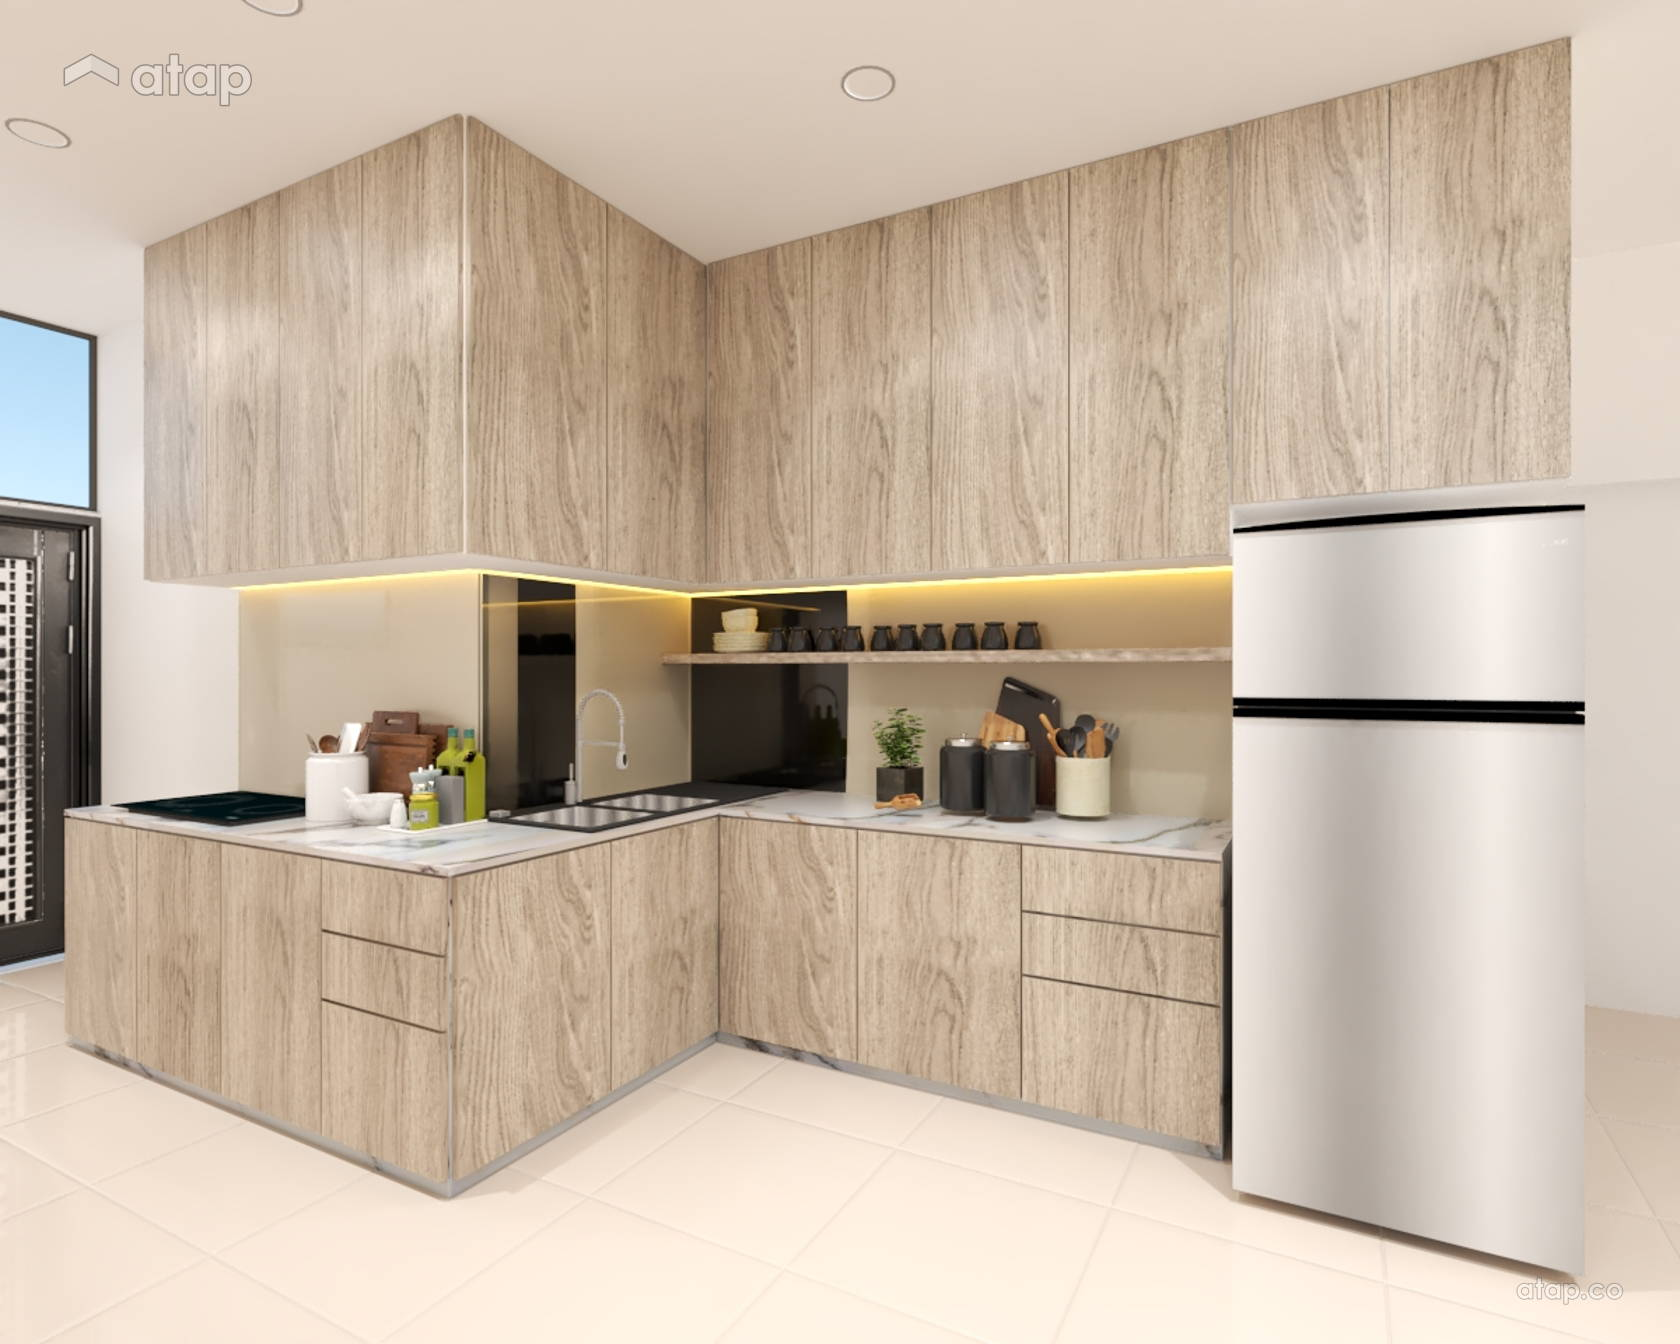 single-wall-kitchen-with-laminated-and-wooden-cabinet